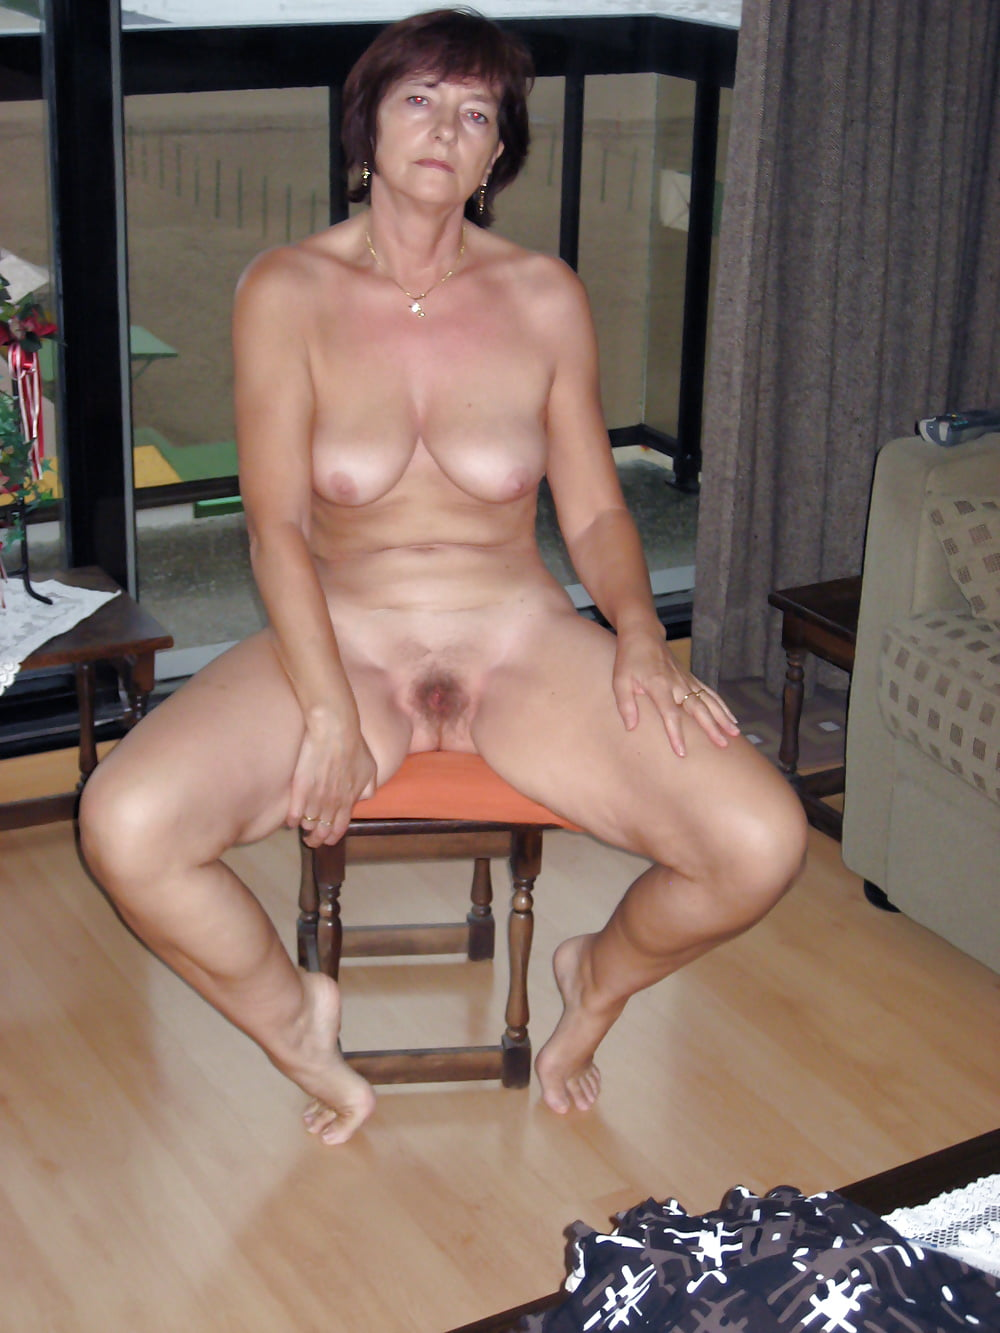 Nude stolen picture of mom #11